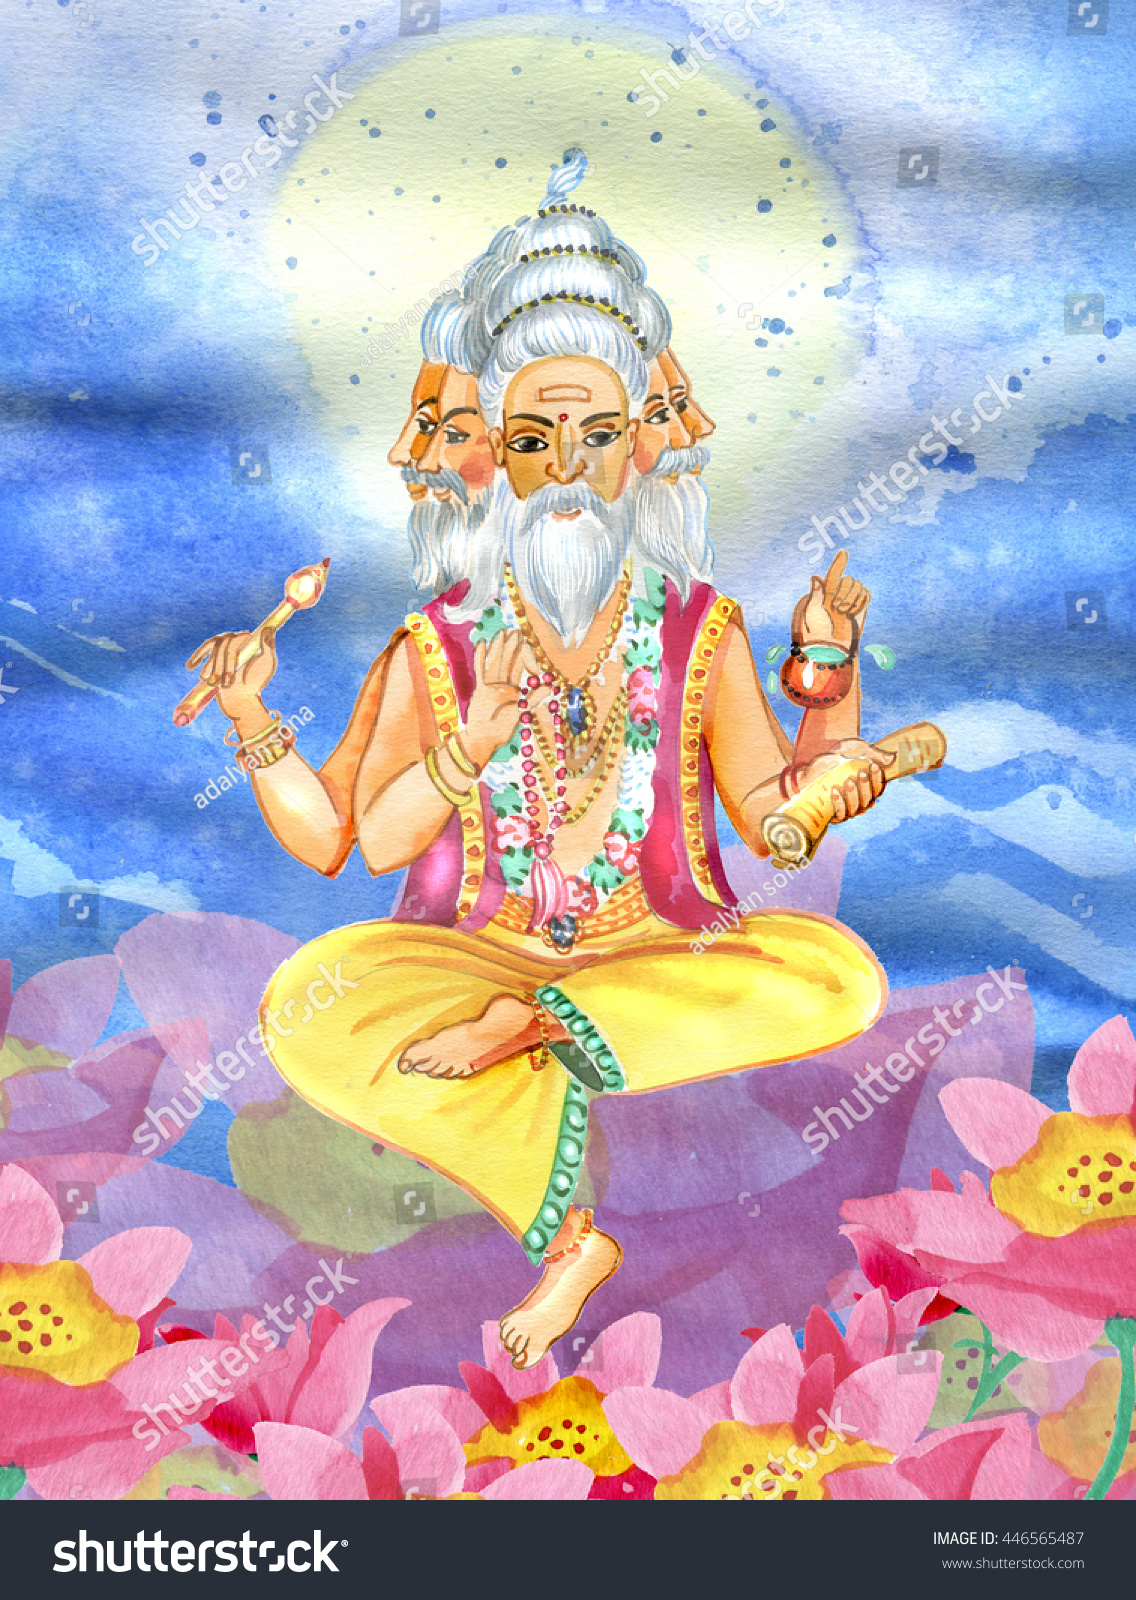 Beautiful brahma sitting on lotus flower stock illustration beautiful brahma sitting on the lotus flower on a background of nature dhlflorist Gallery